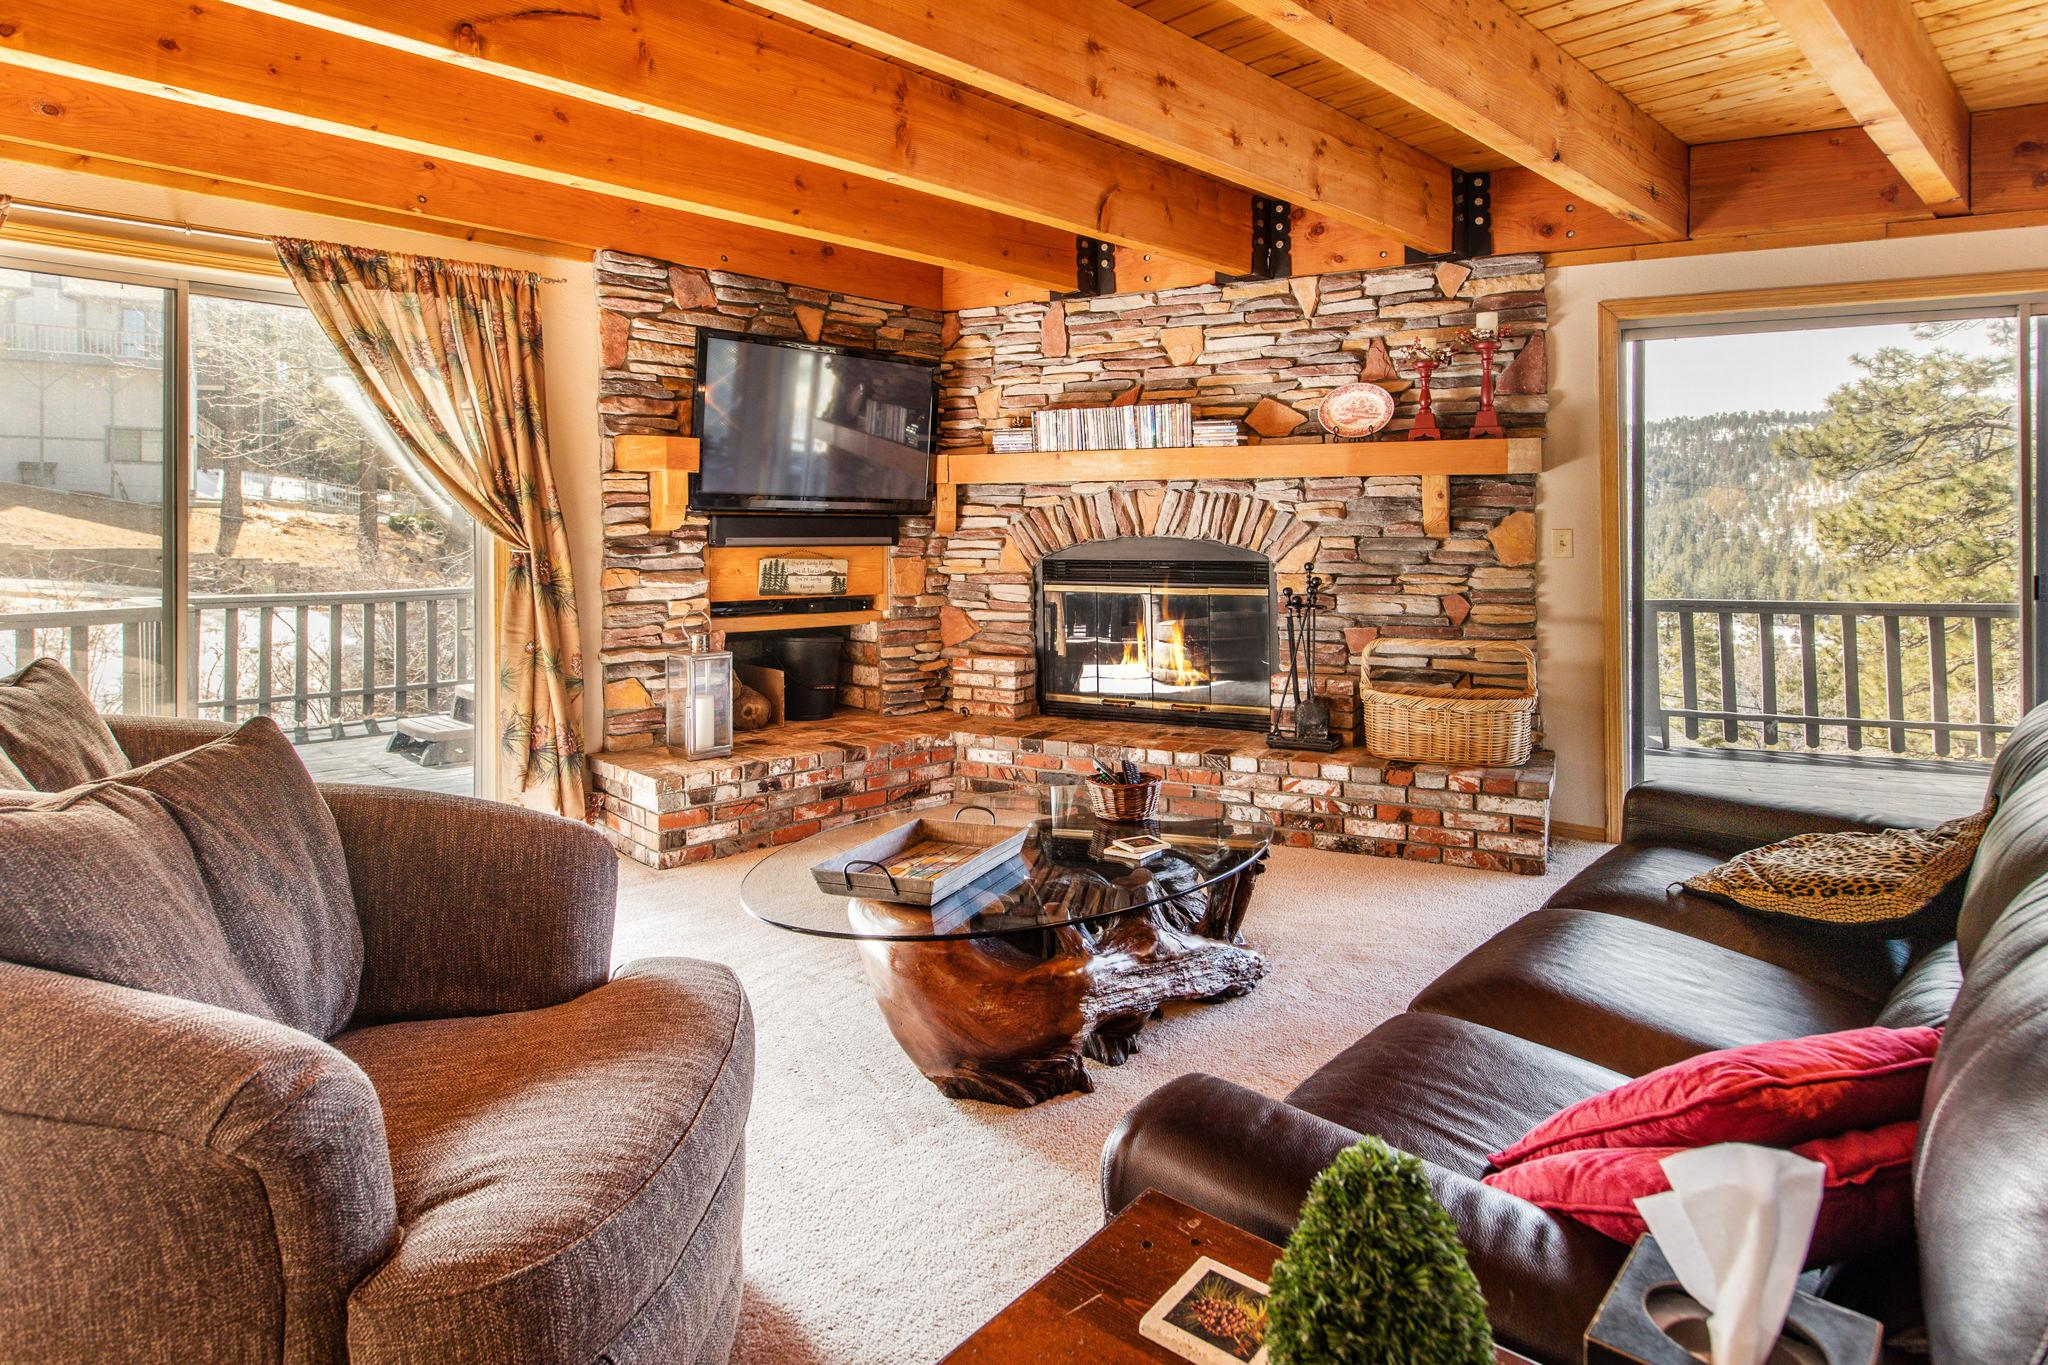 A beautiful main living area combines cozy seating with the comfort of a wood-burning fireplace.